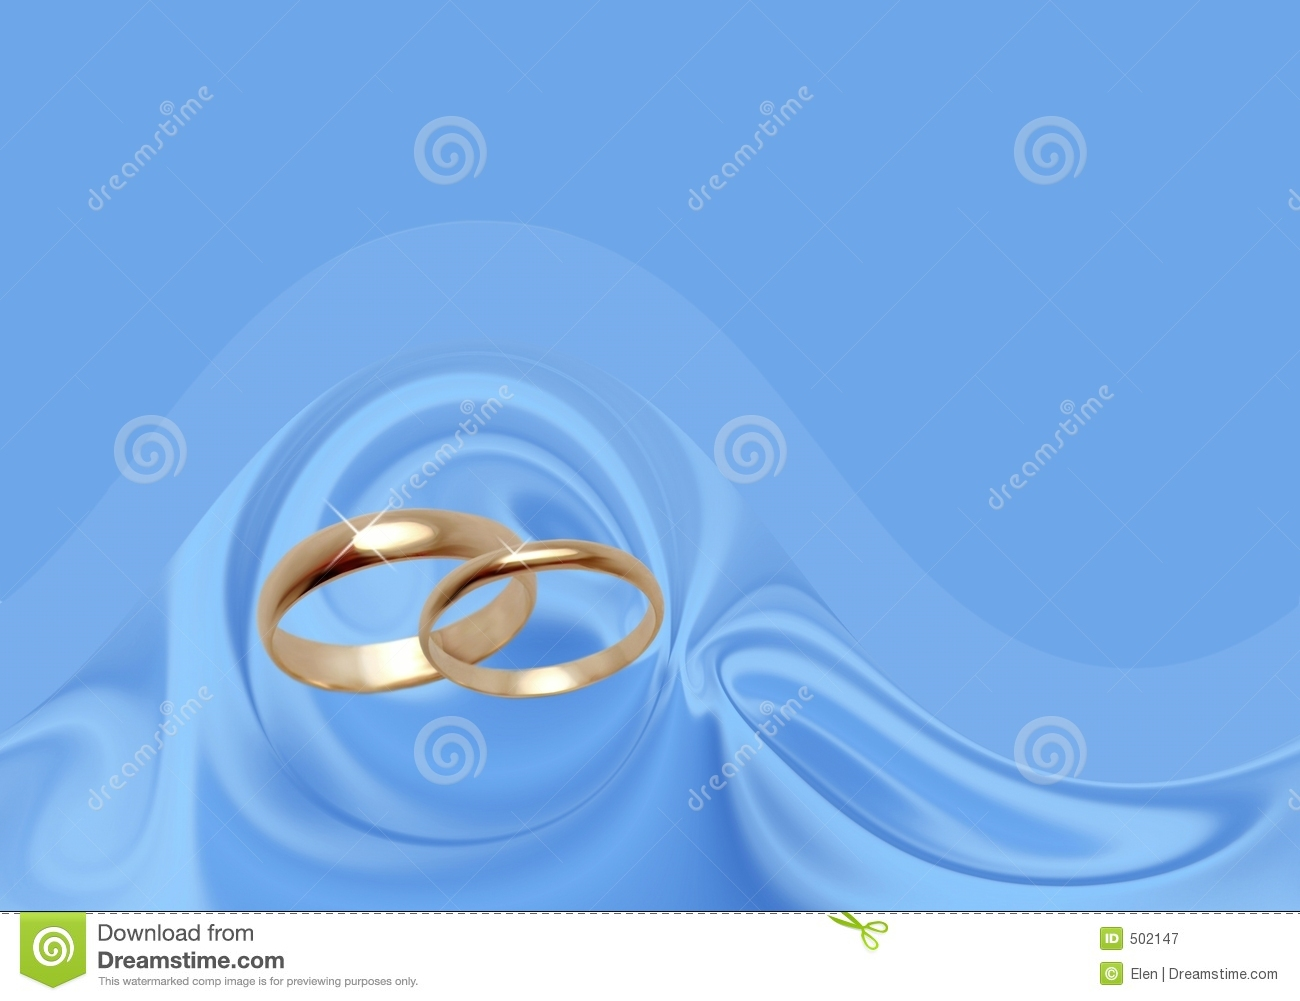 Wedding Rings On Blue Material. Royalty Free Stock Photography - Image ...